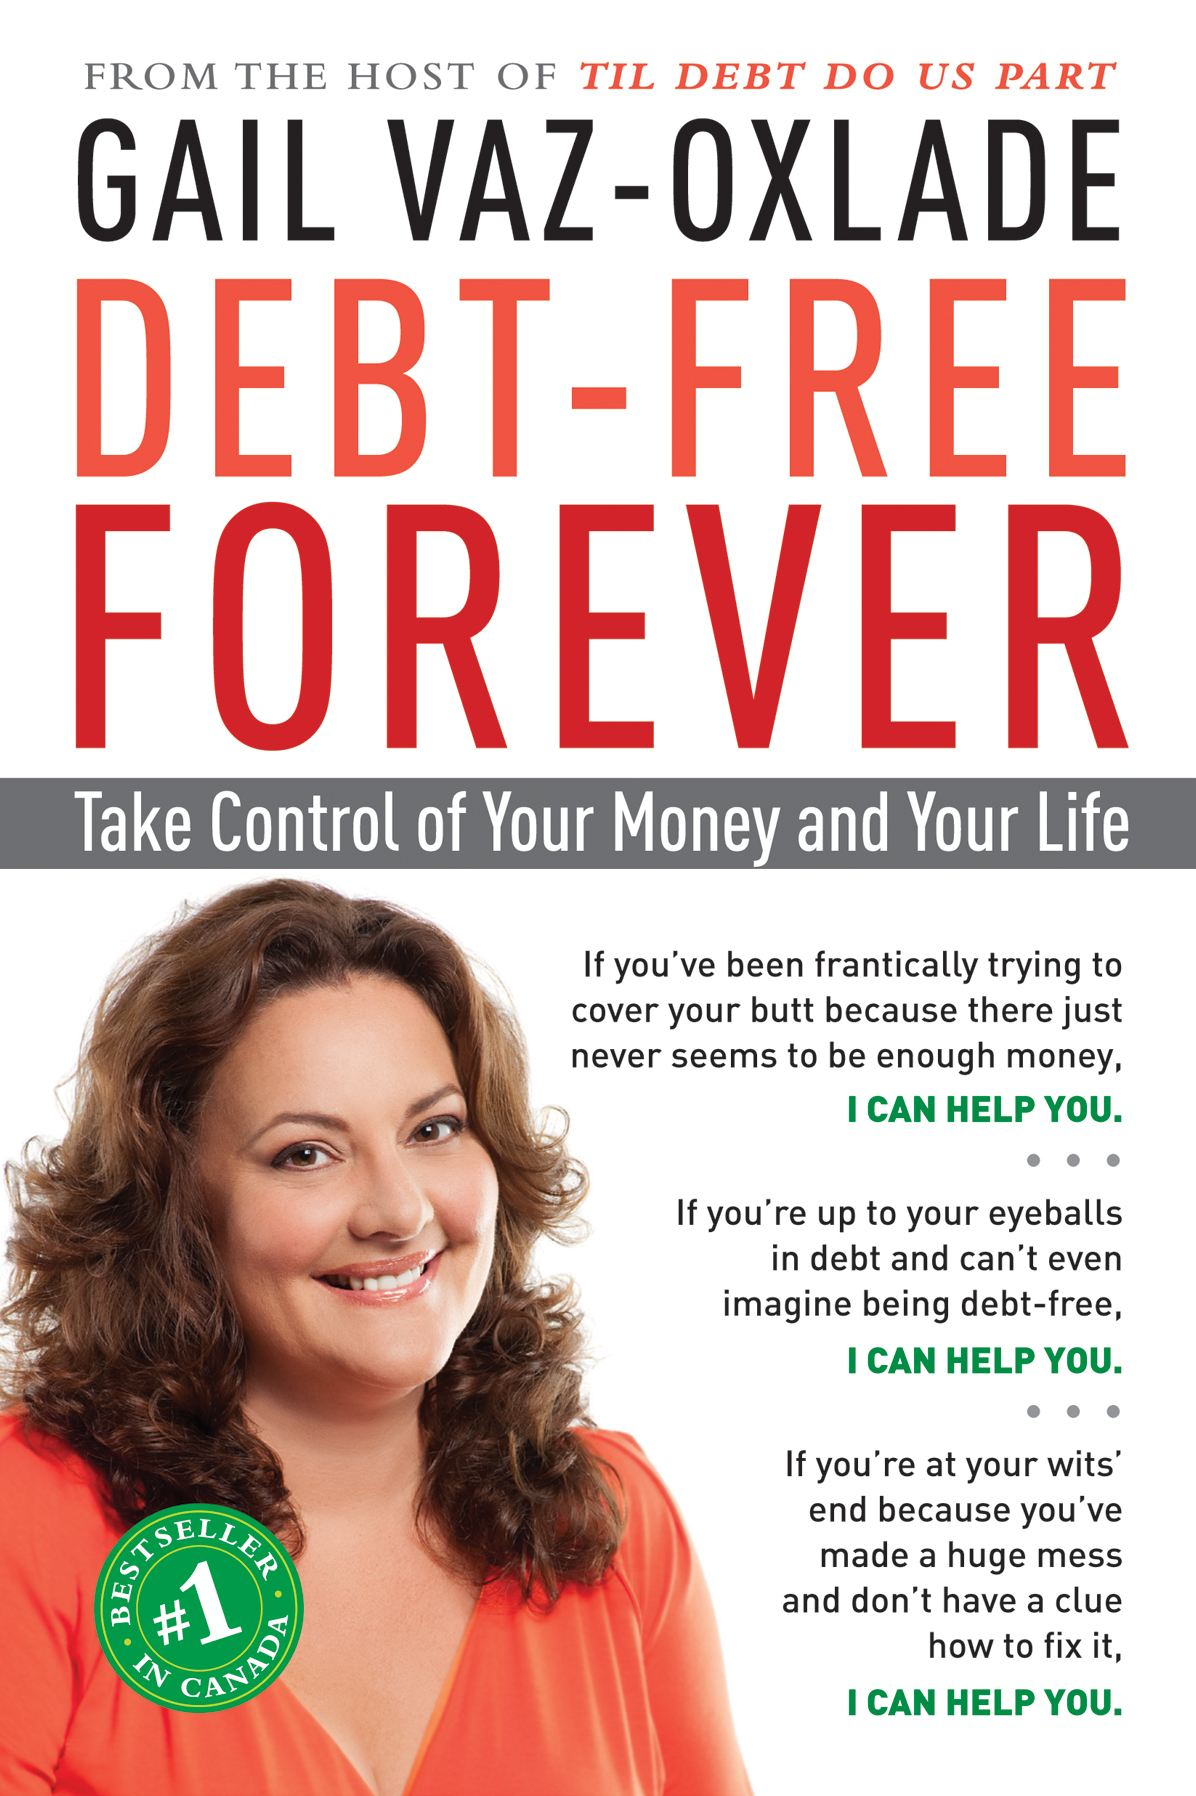 Debt-Free Forever: Take Control of Your Money and Your Life By: Gail Vaz-Oxlade